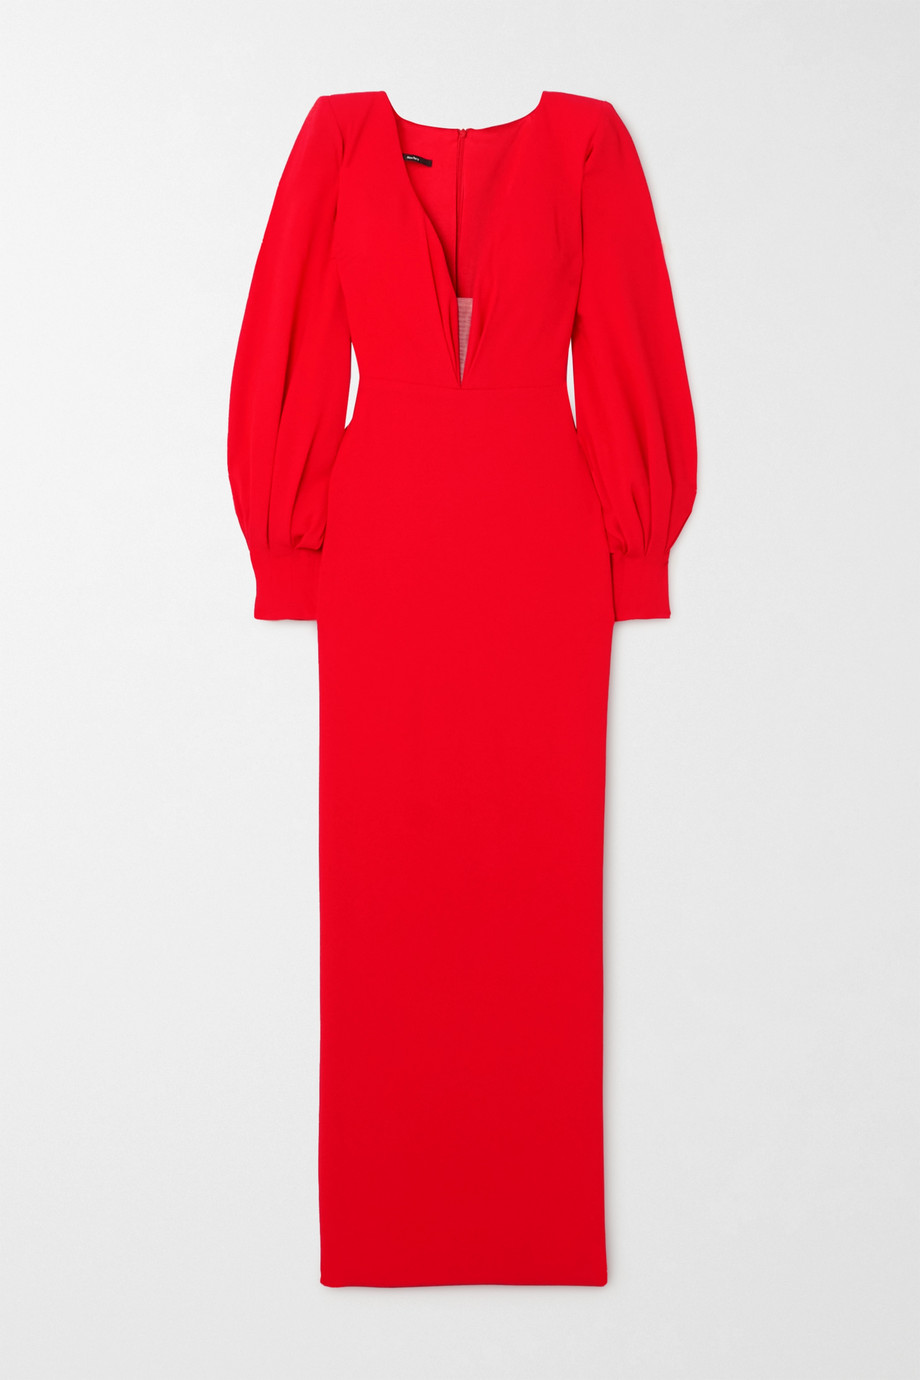 Alex Perry Carlin satin-crepe gown